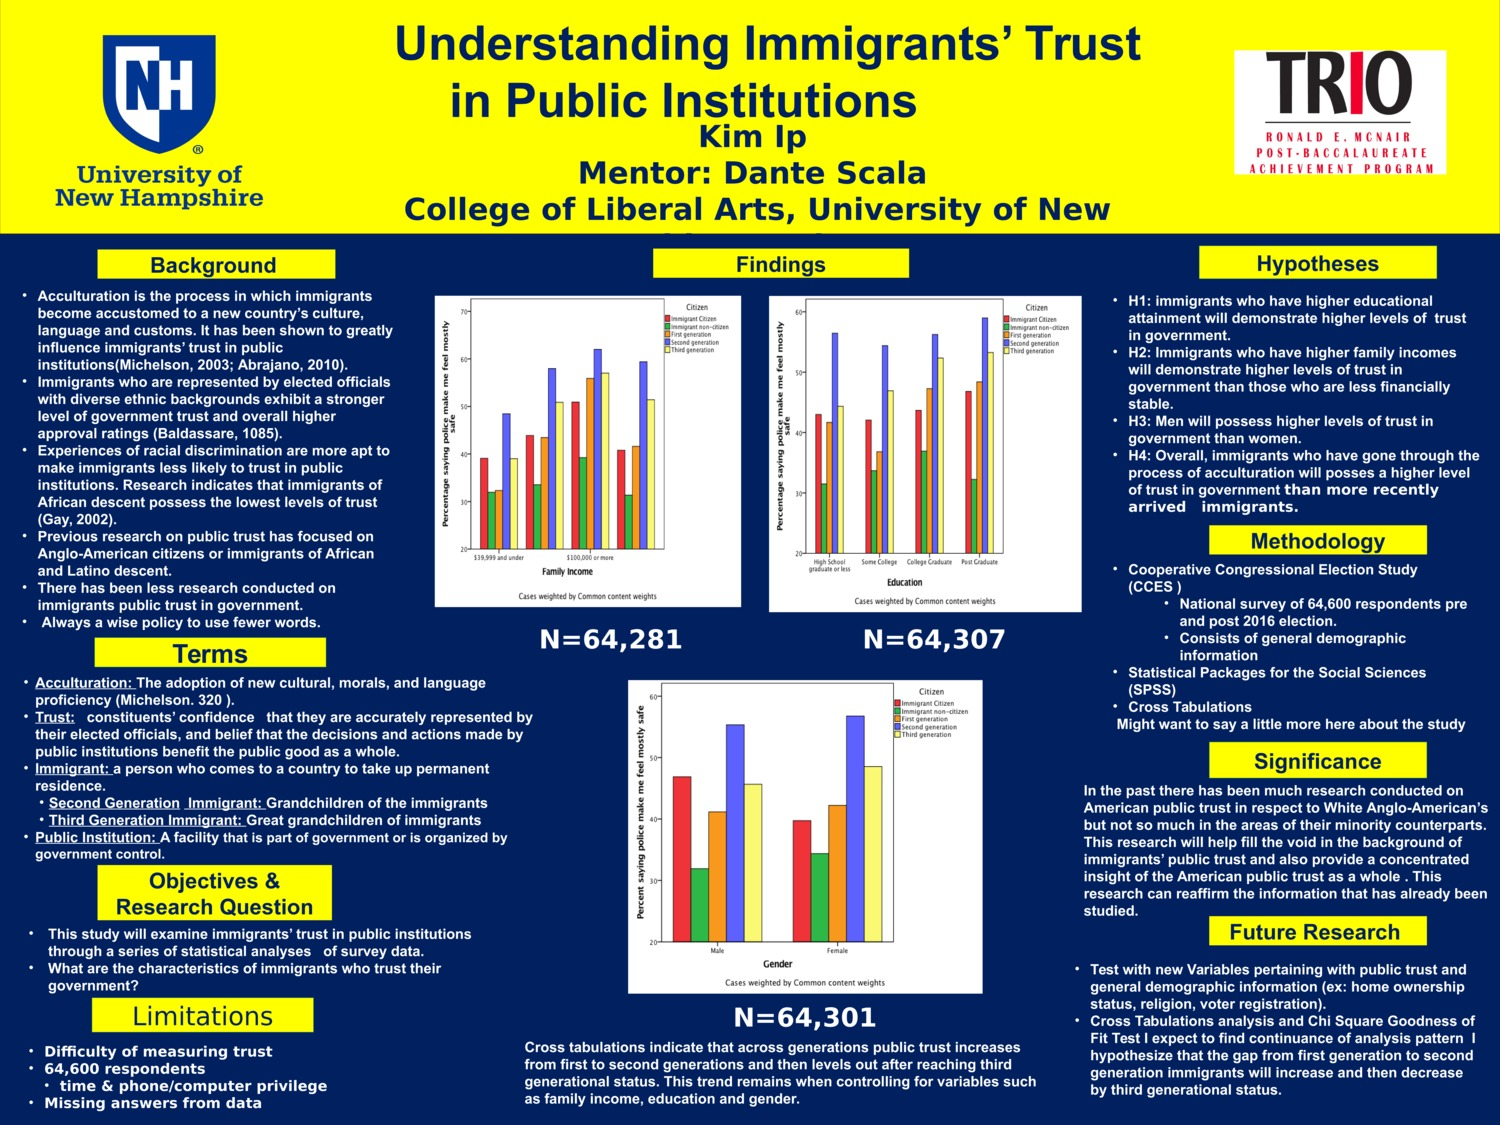 Understanding Immigrants' Trust In Public Institutions  by ki2000